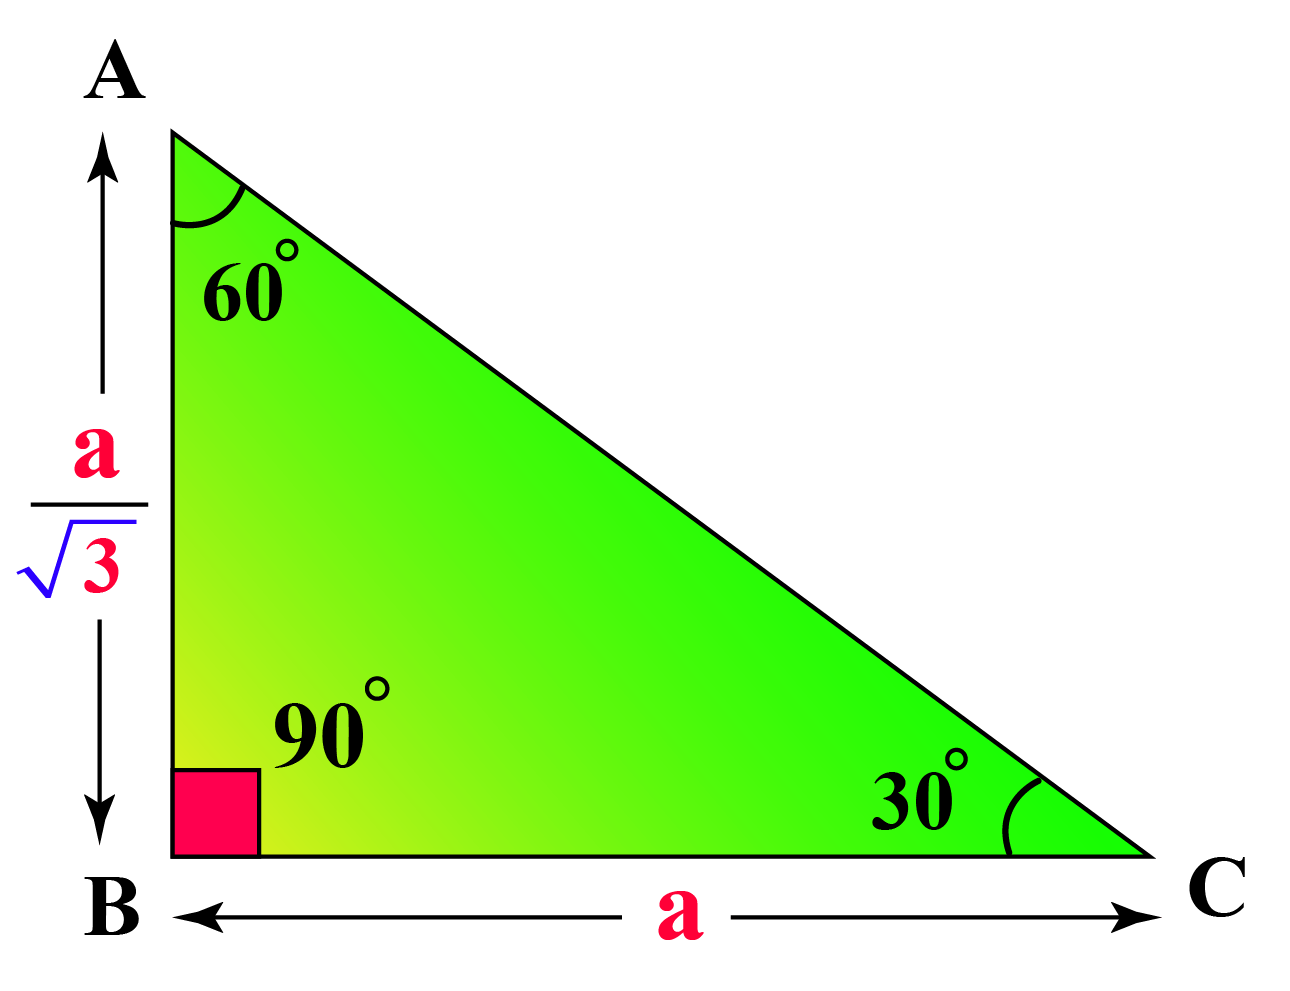 Base of a 30 60 90 triangle